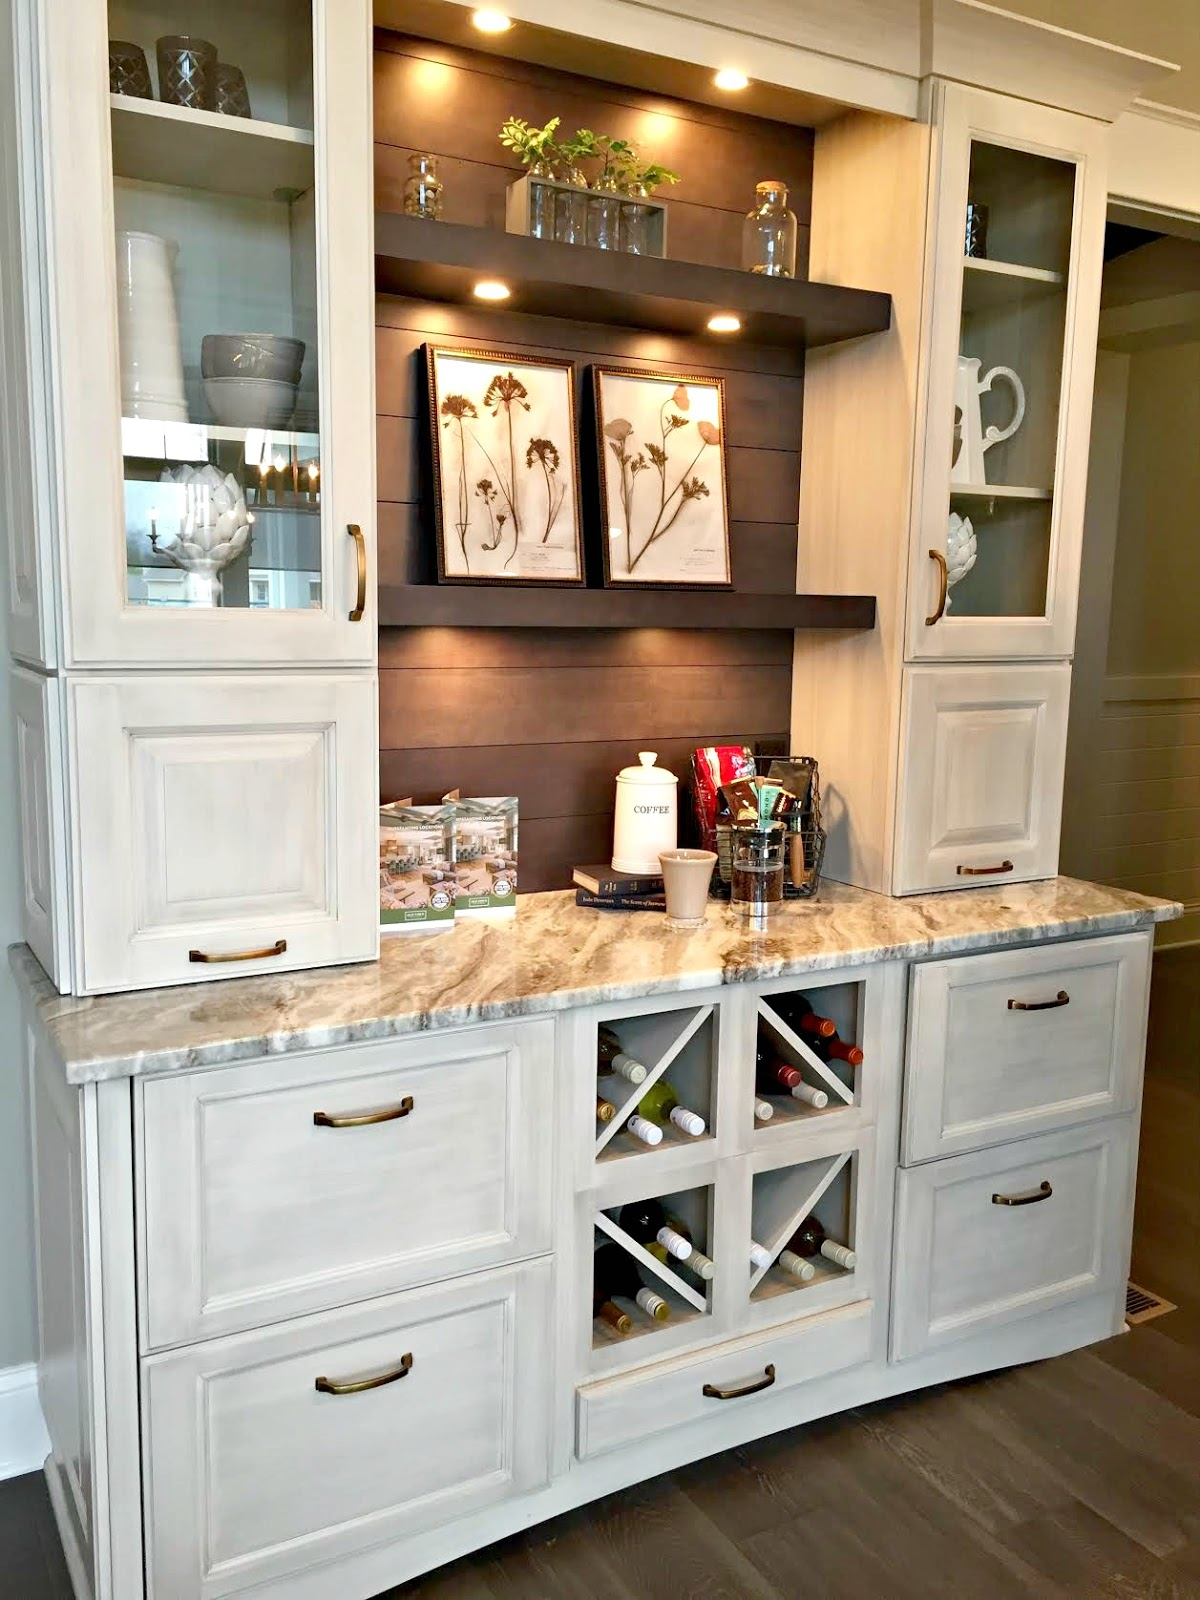 Coffee Bar In Kitchen Coastal Decor Let 39s Walk Through Some Gorgeous Houses From Thrifty